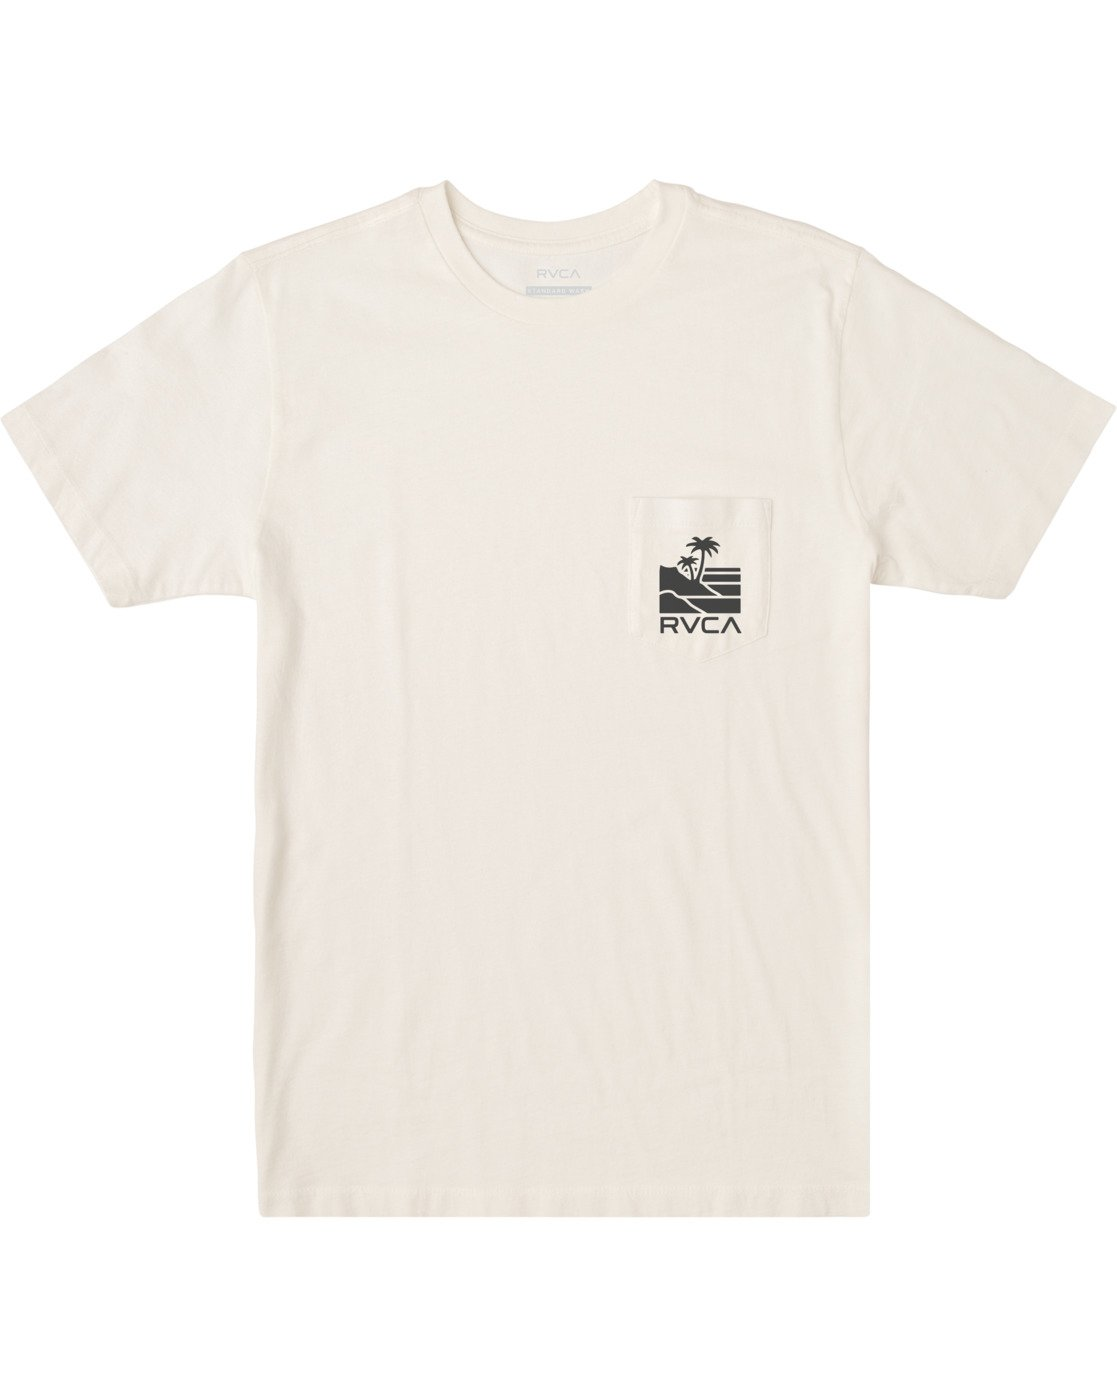 0 Boys VISTA SHORT SLEEVE T-SHIRT White B4122RVI RVCA